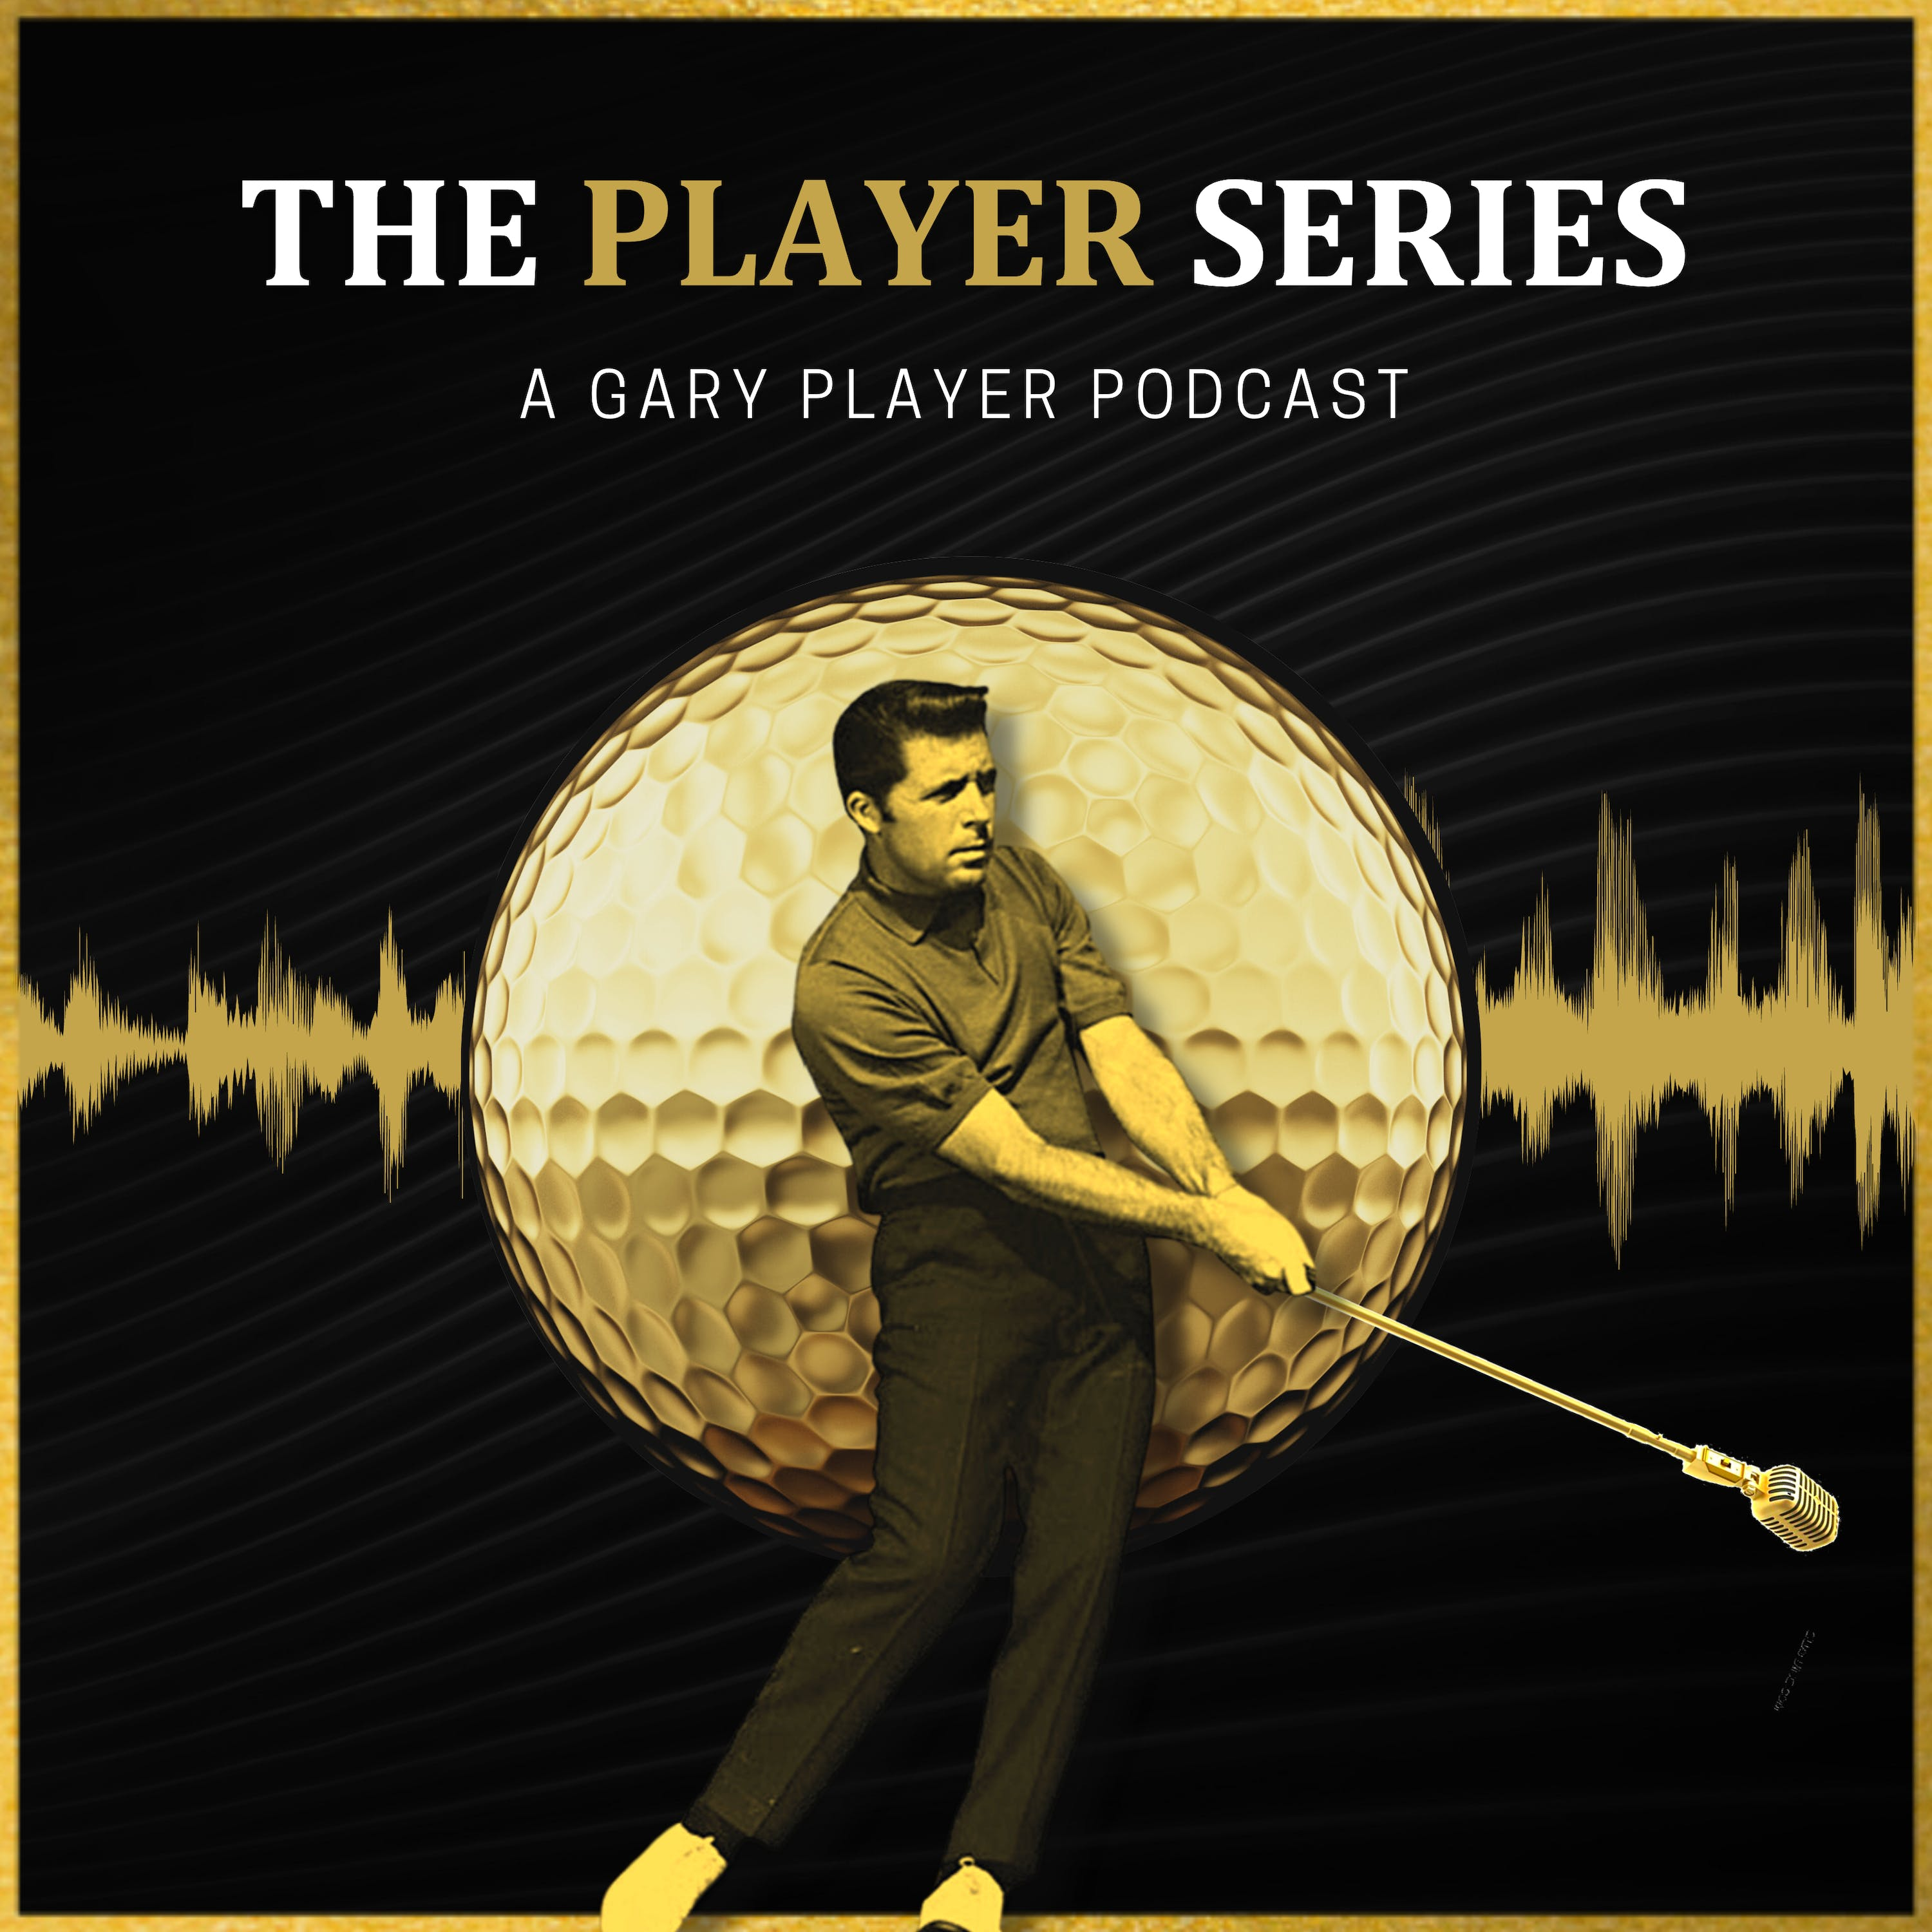 The Player Series podcast show image